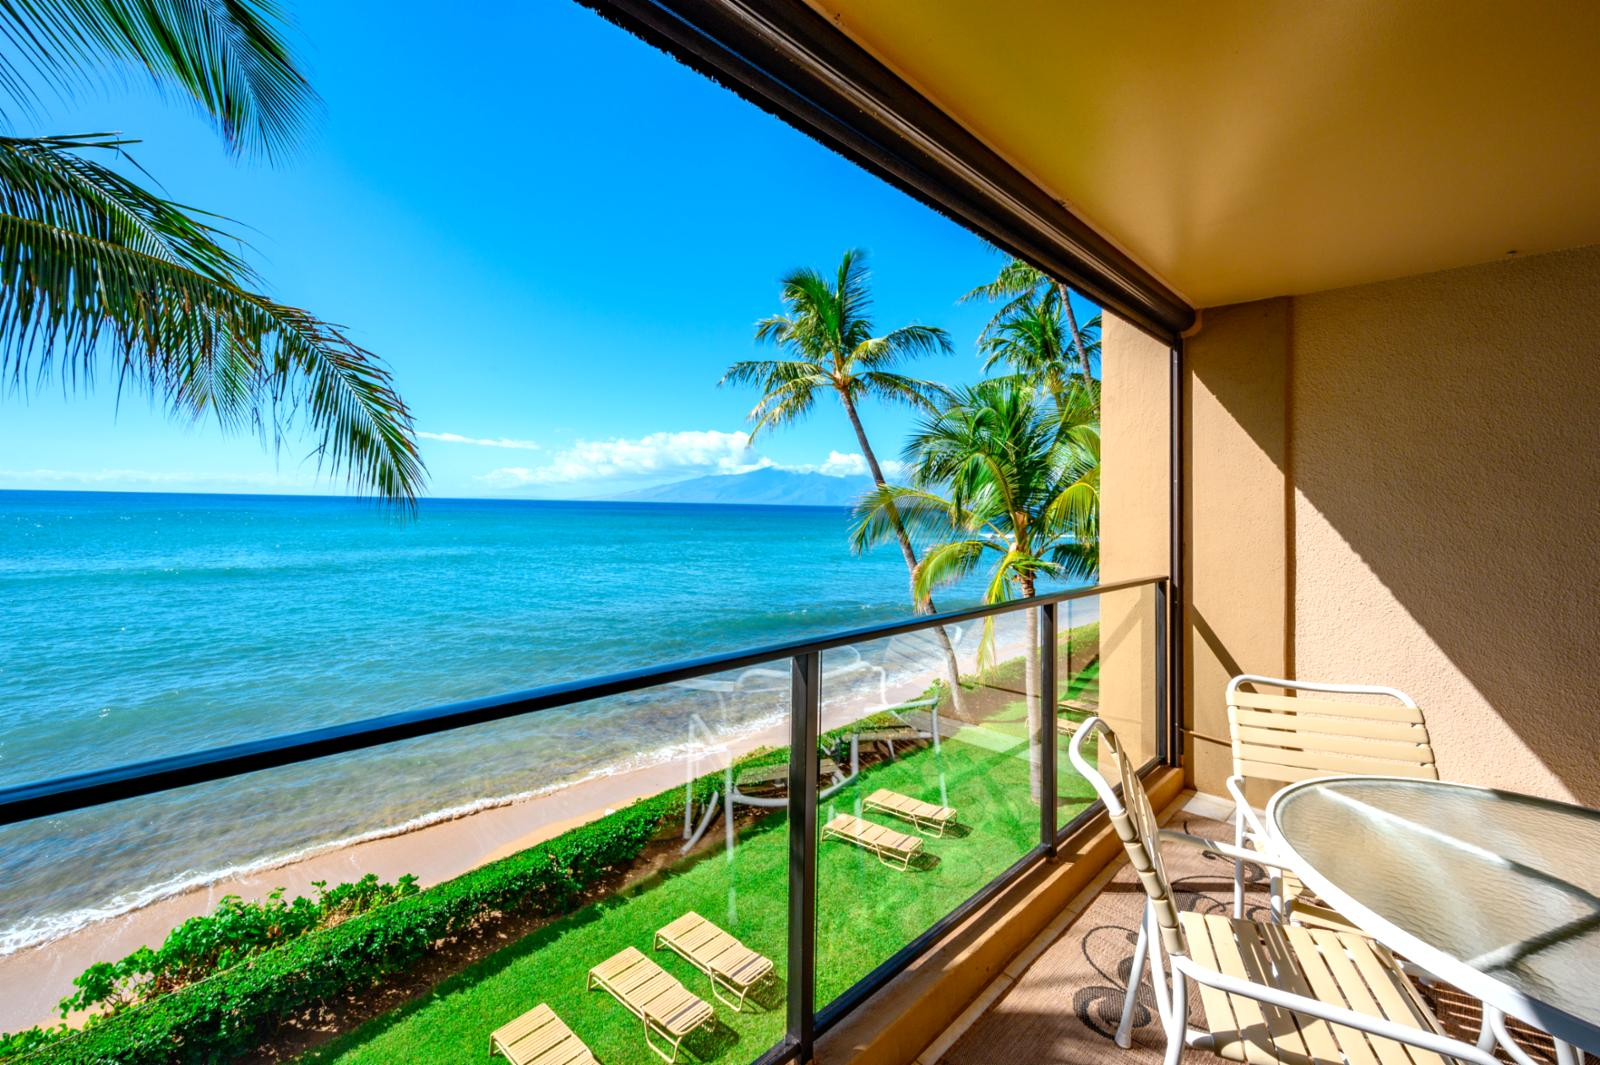 Endless sunsets and aqua marine views from this unit